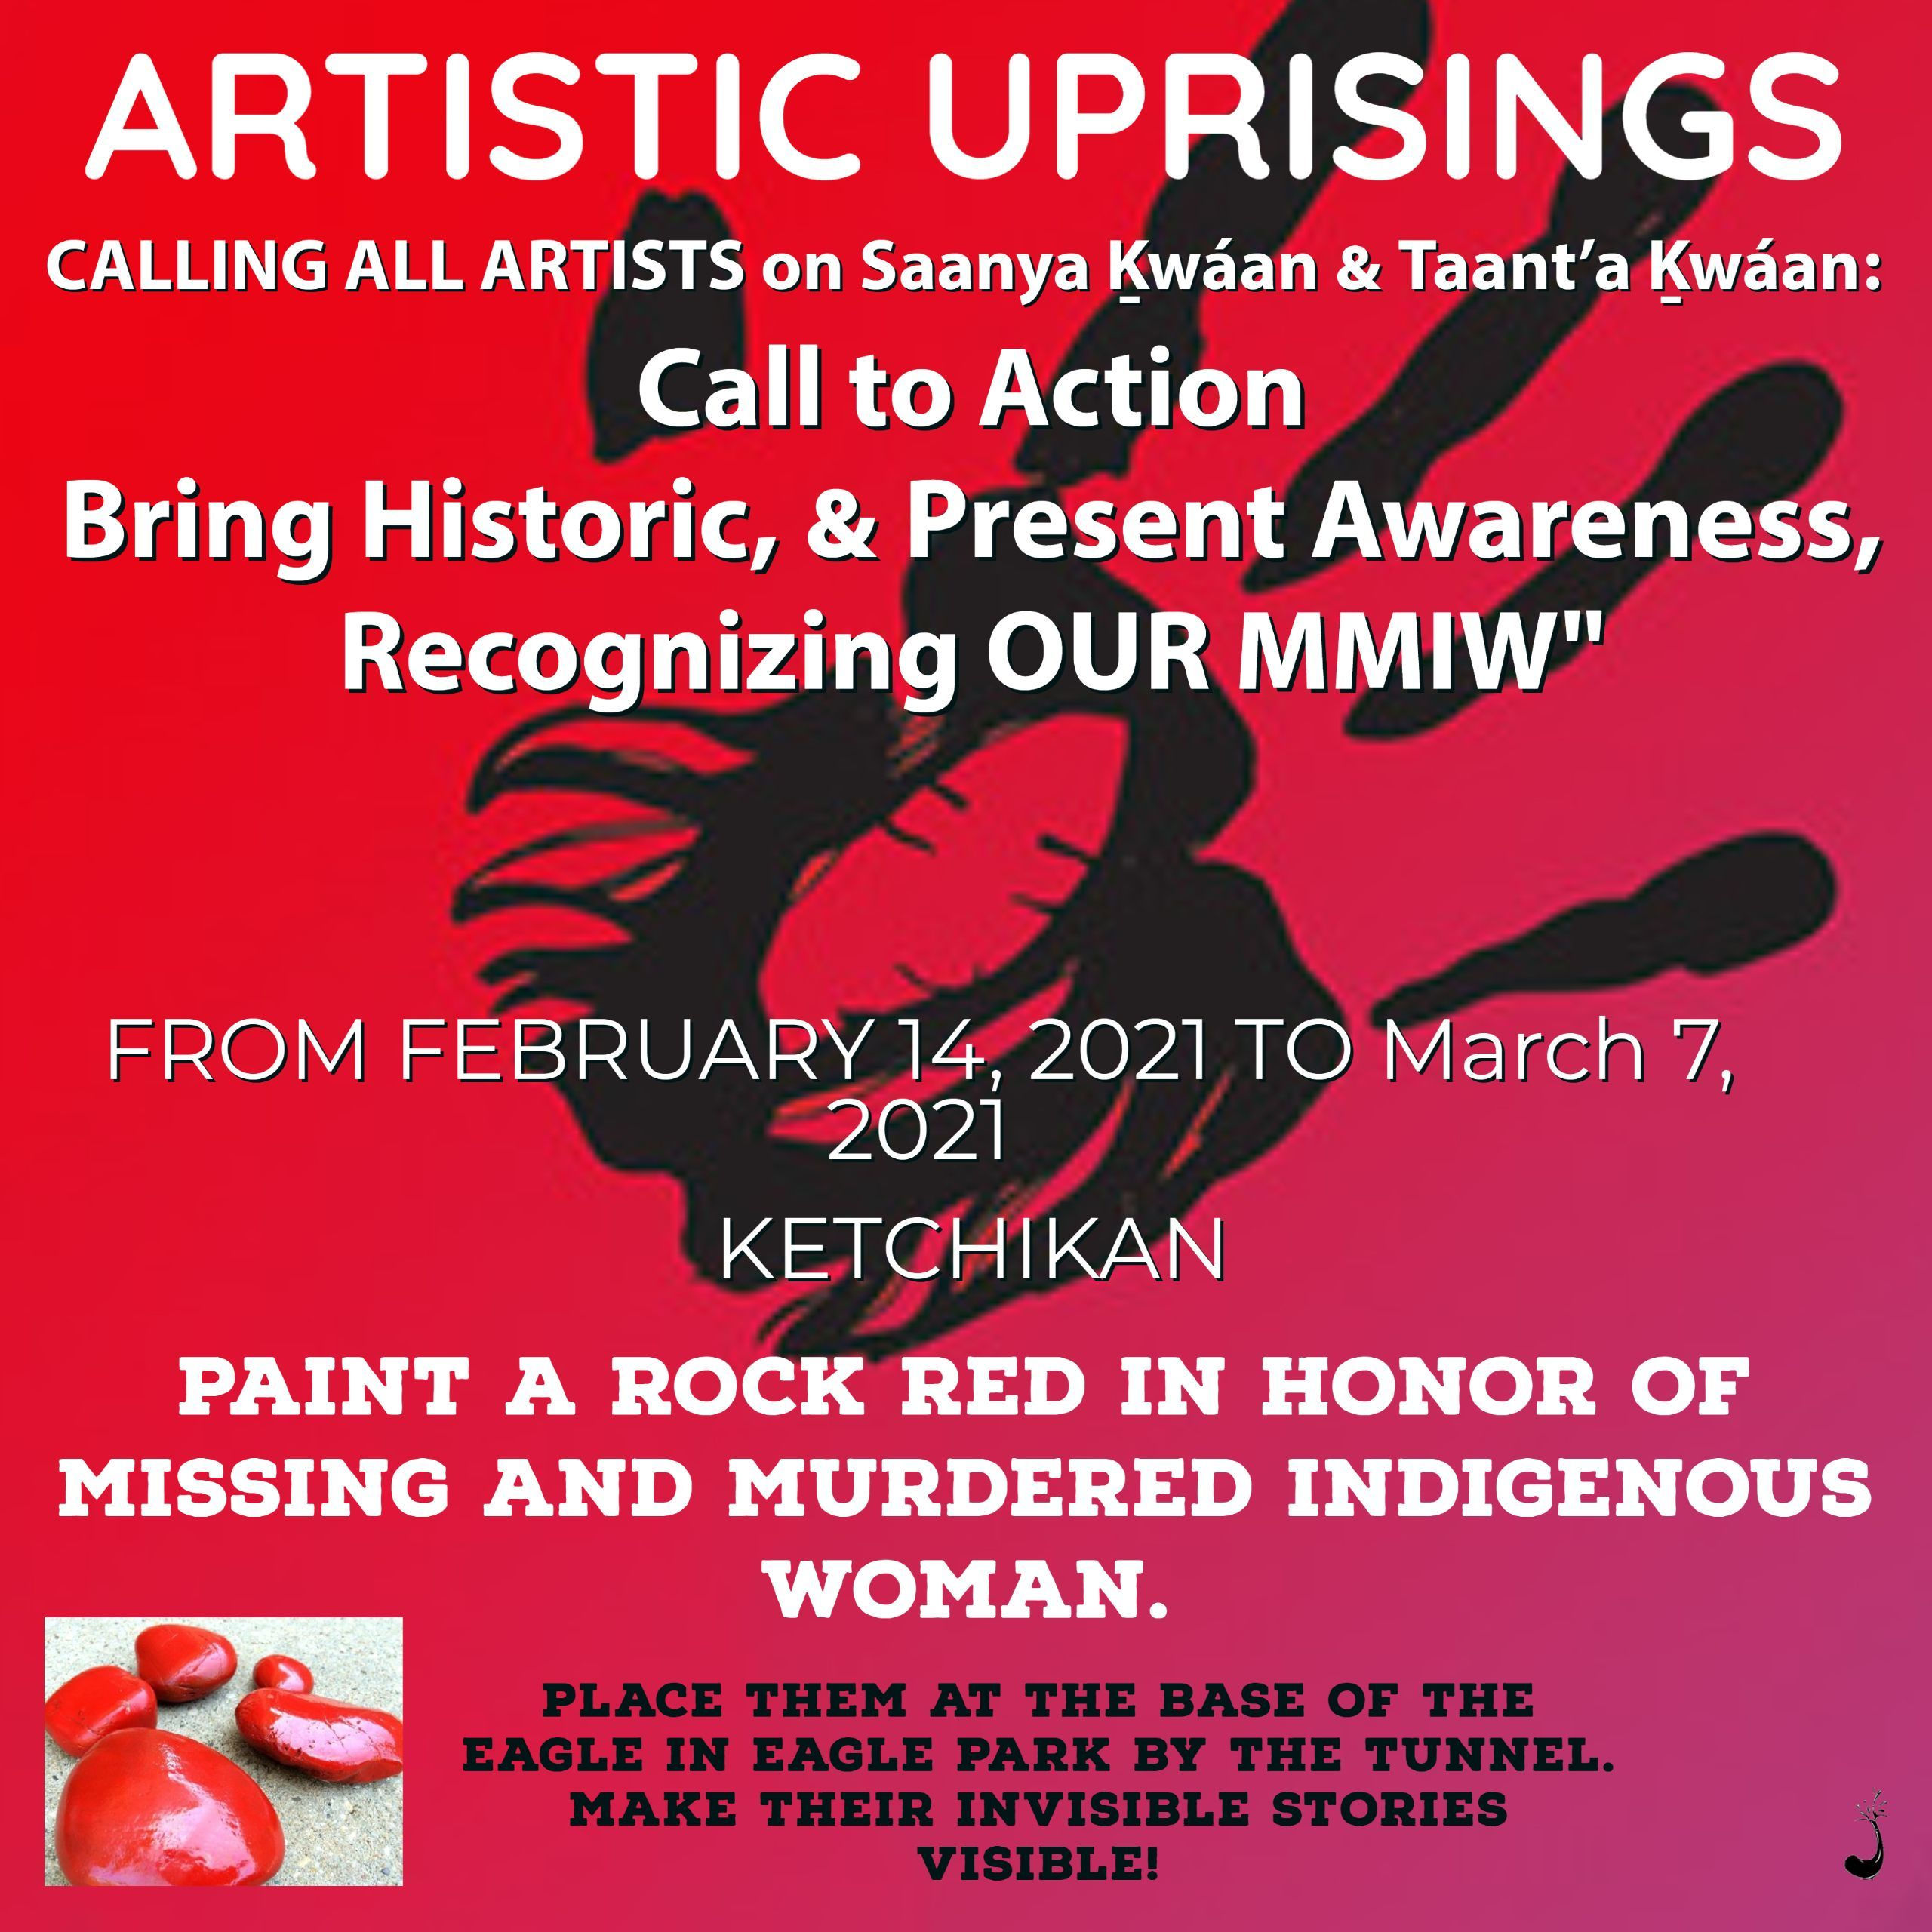 Recognizing Missing and Murdered Indigenous Women